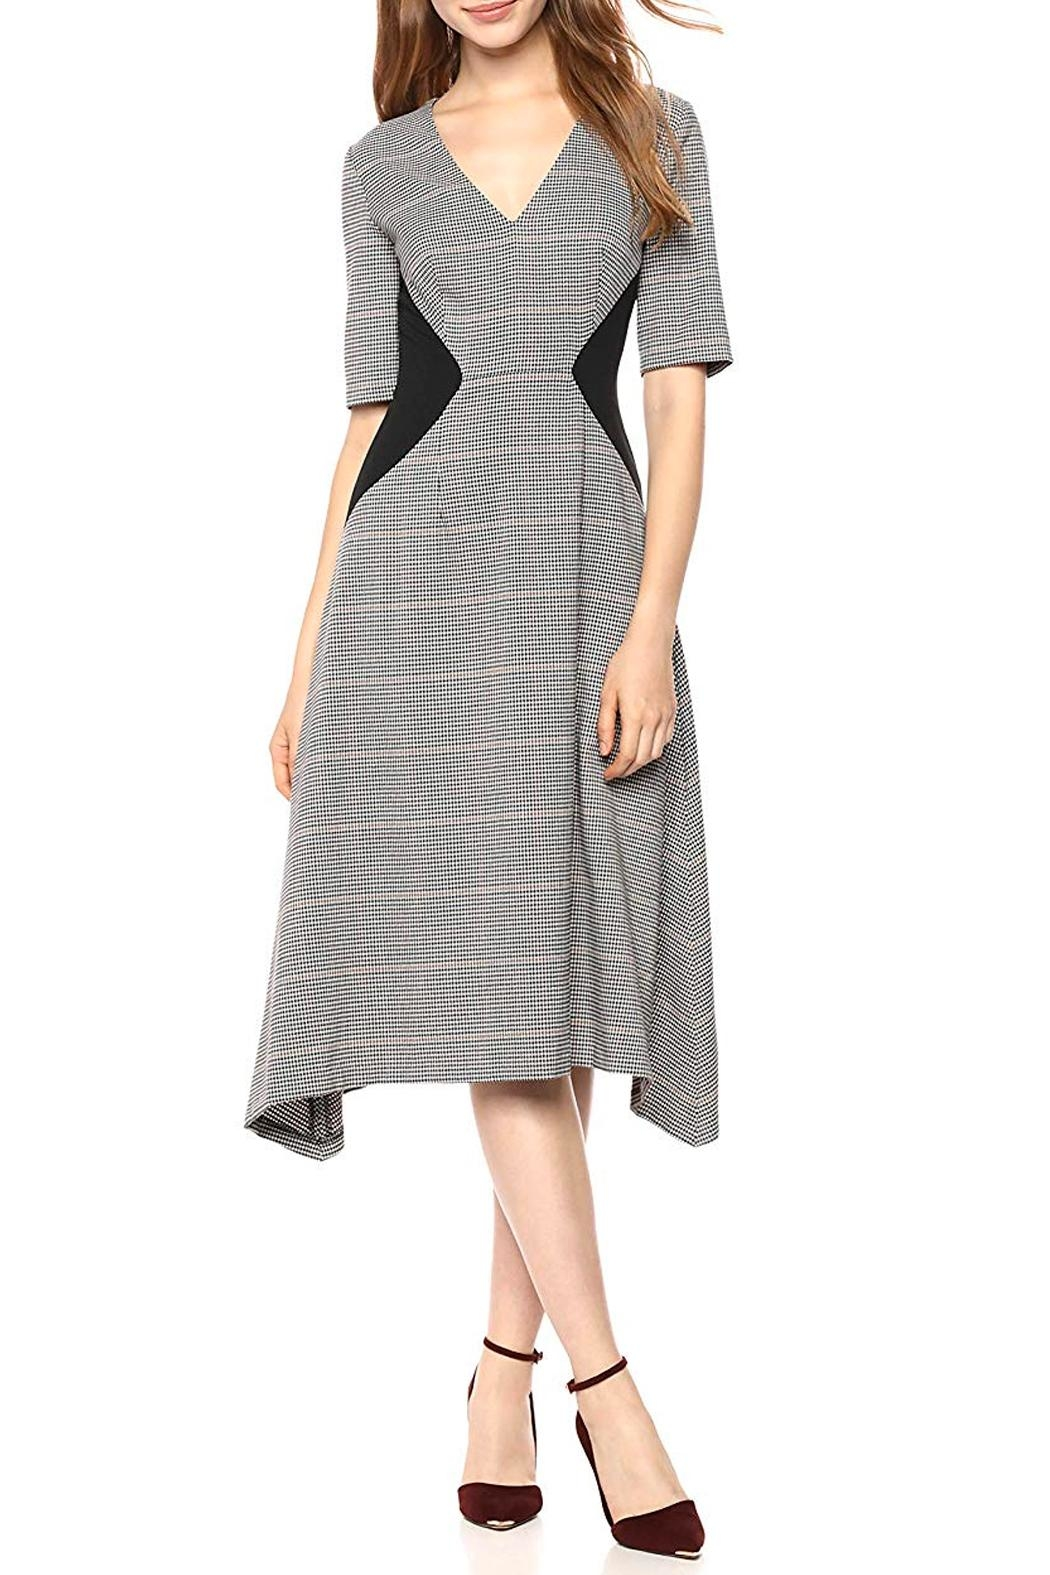 Donna Morgan V-Neck Fit-And-Flare Dress - Main Image